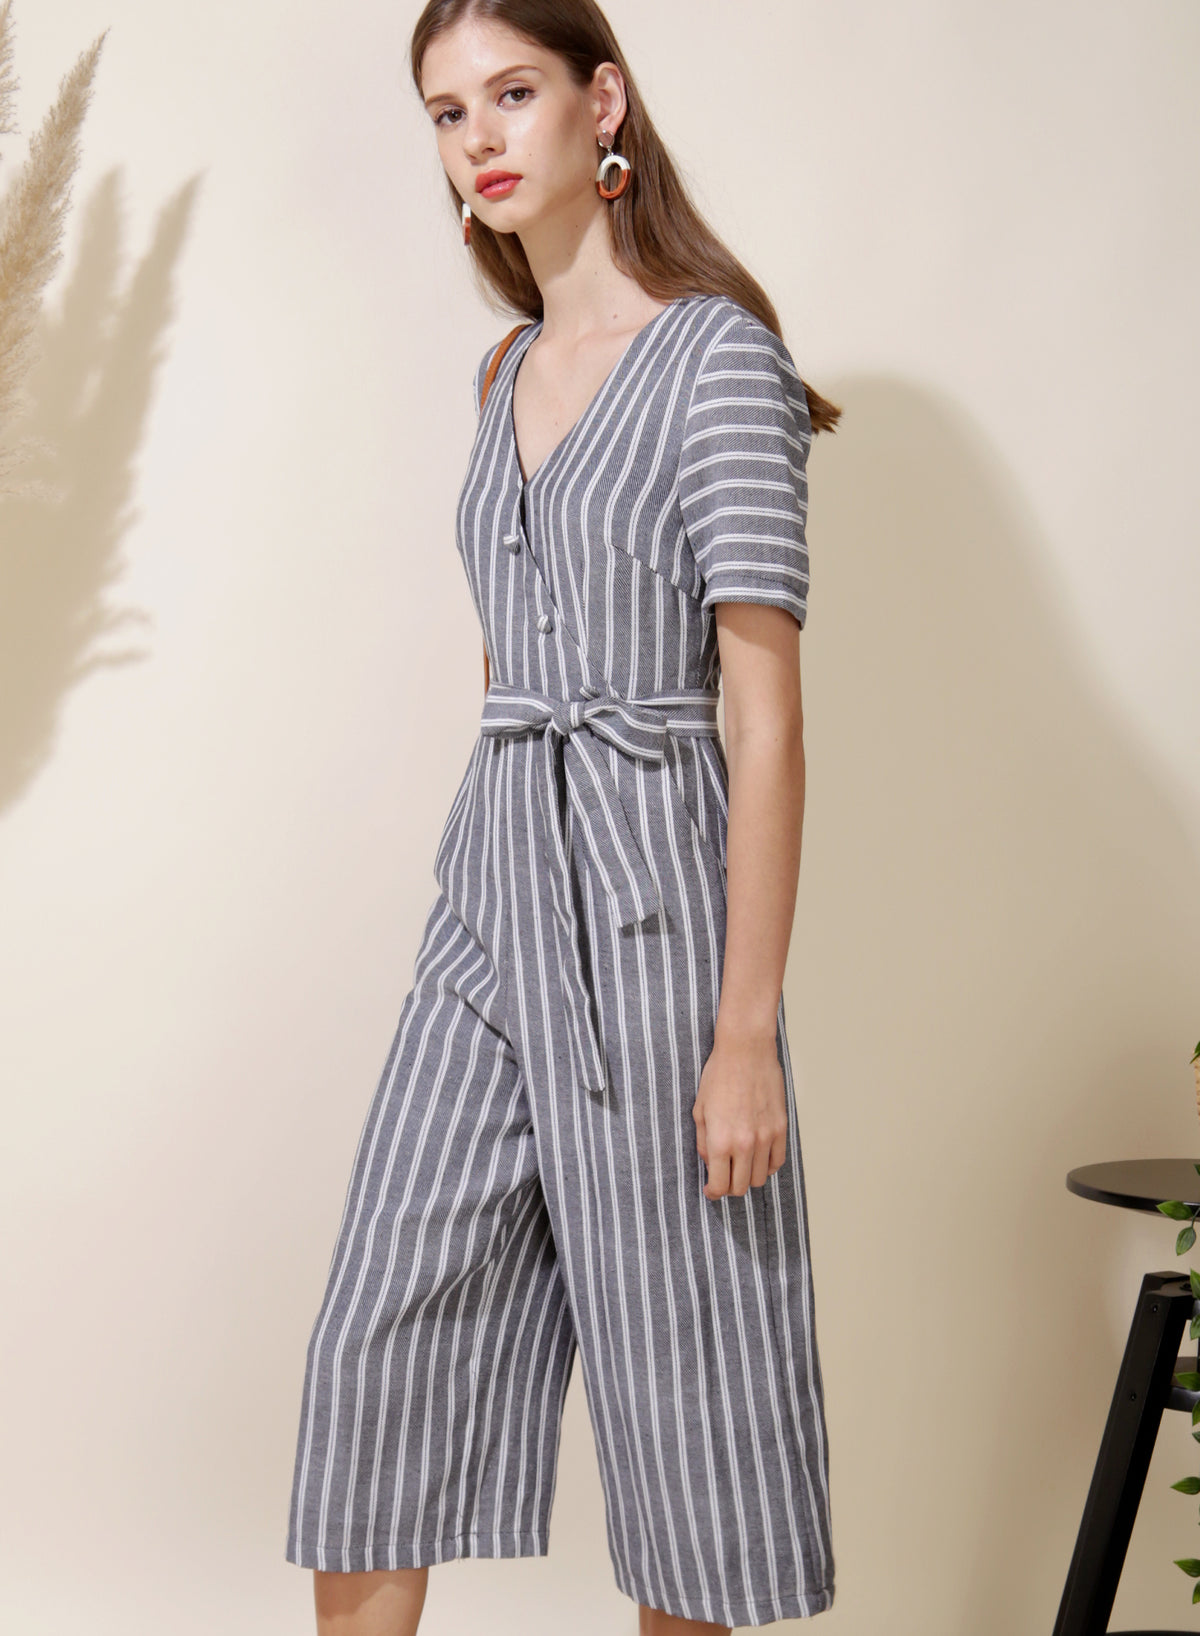 Celebrate Striped Jumpsuit (Navy) at $ 43.50 only sold at And Well Dressed Online Fashion Store Singapore